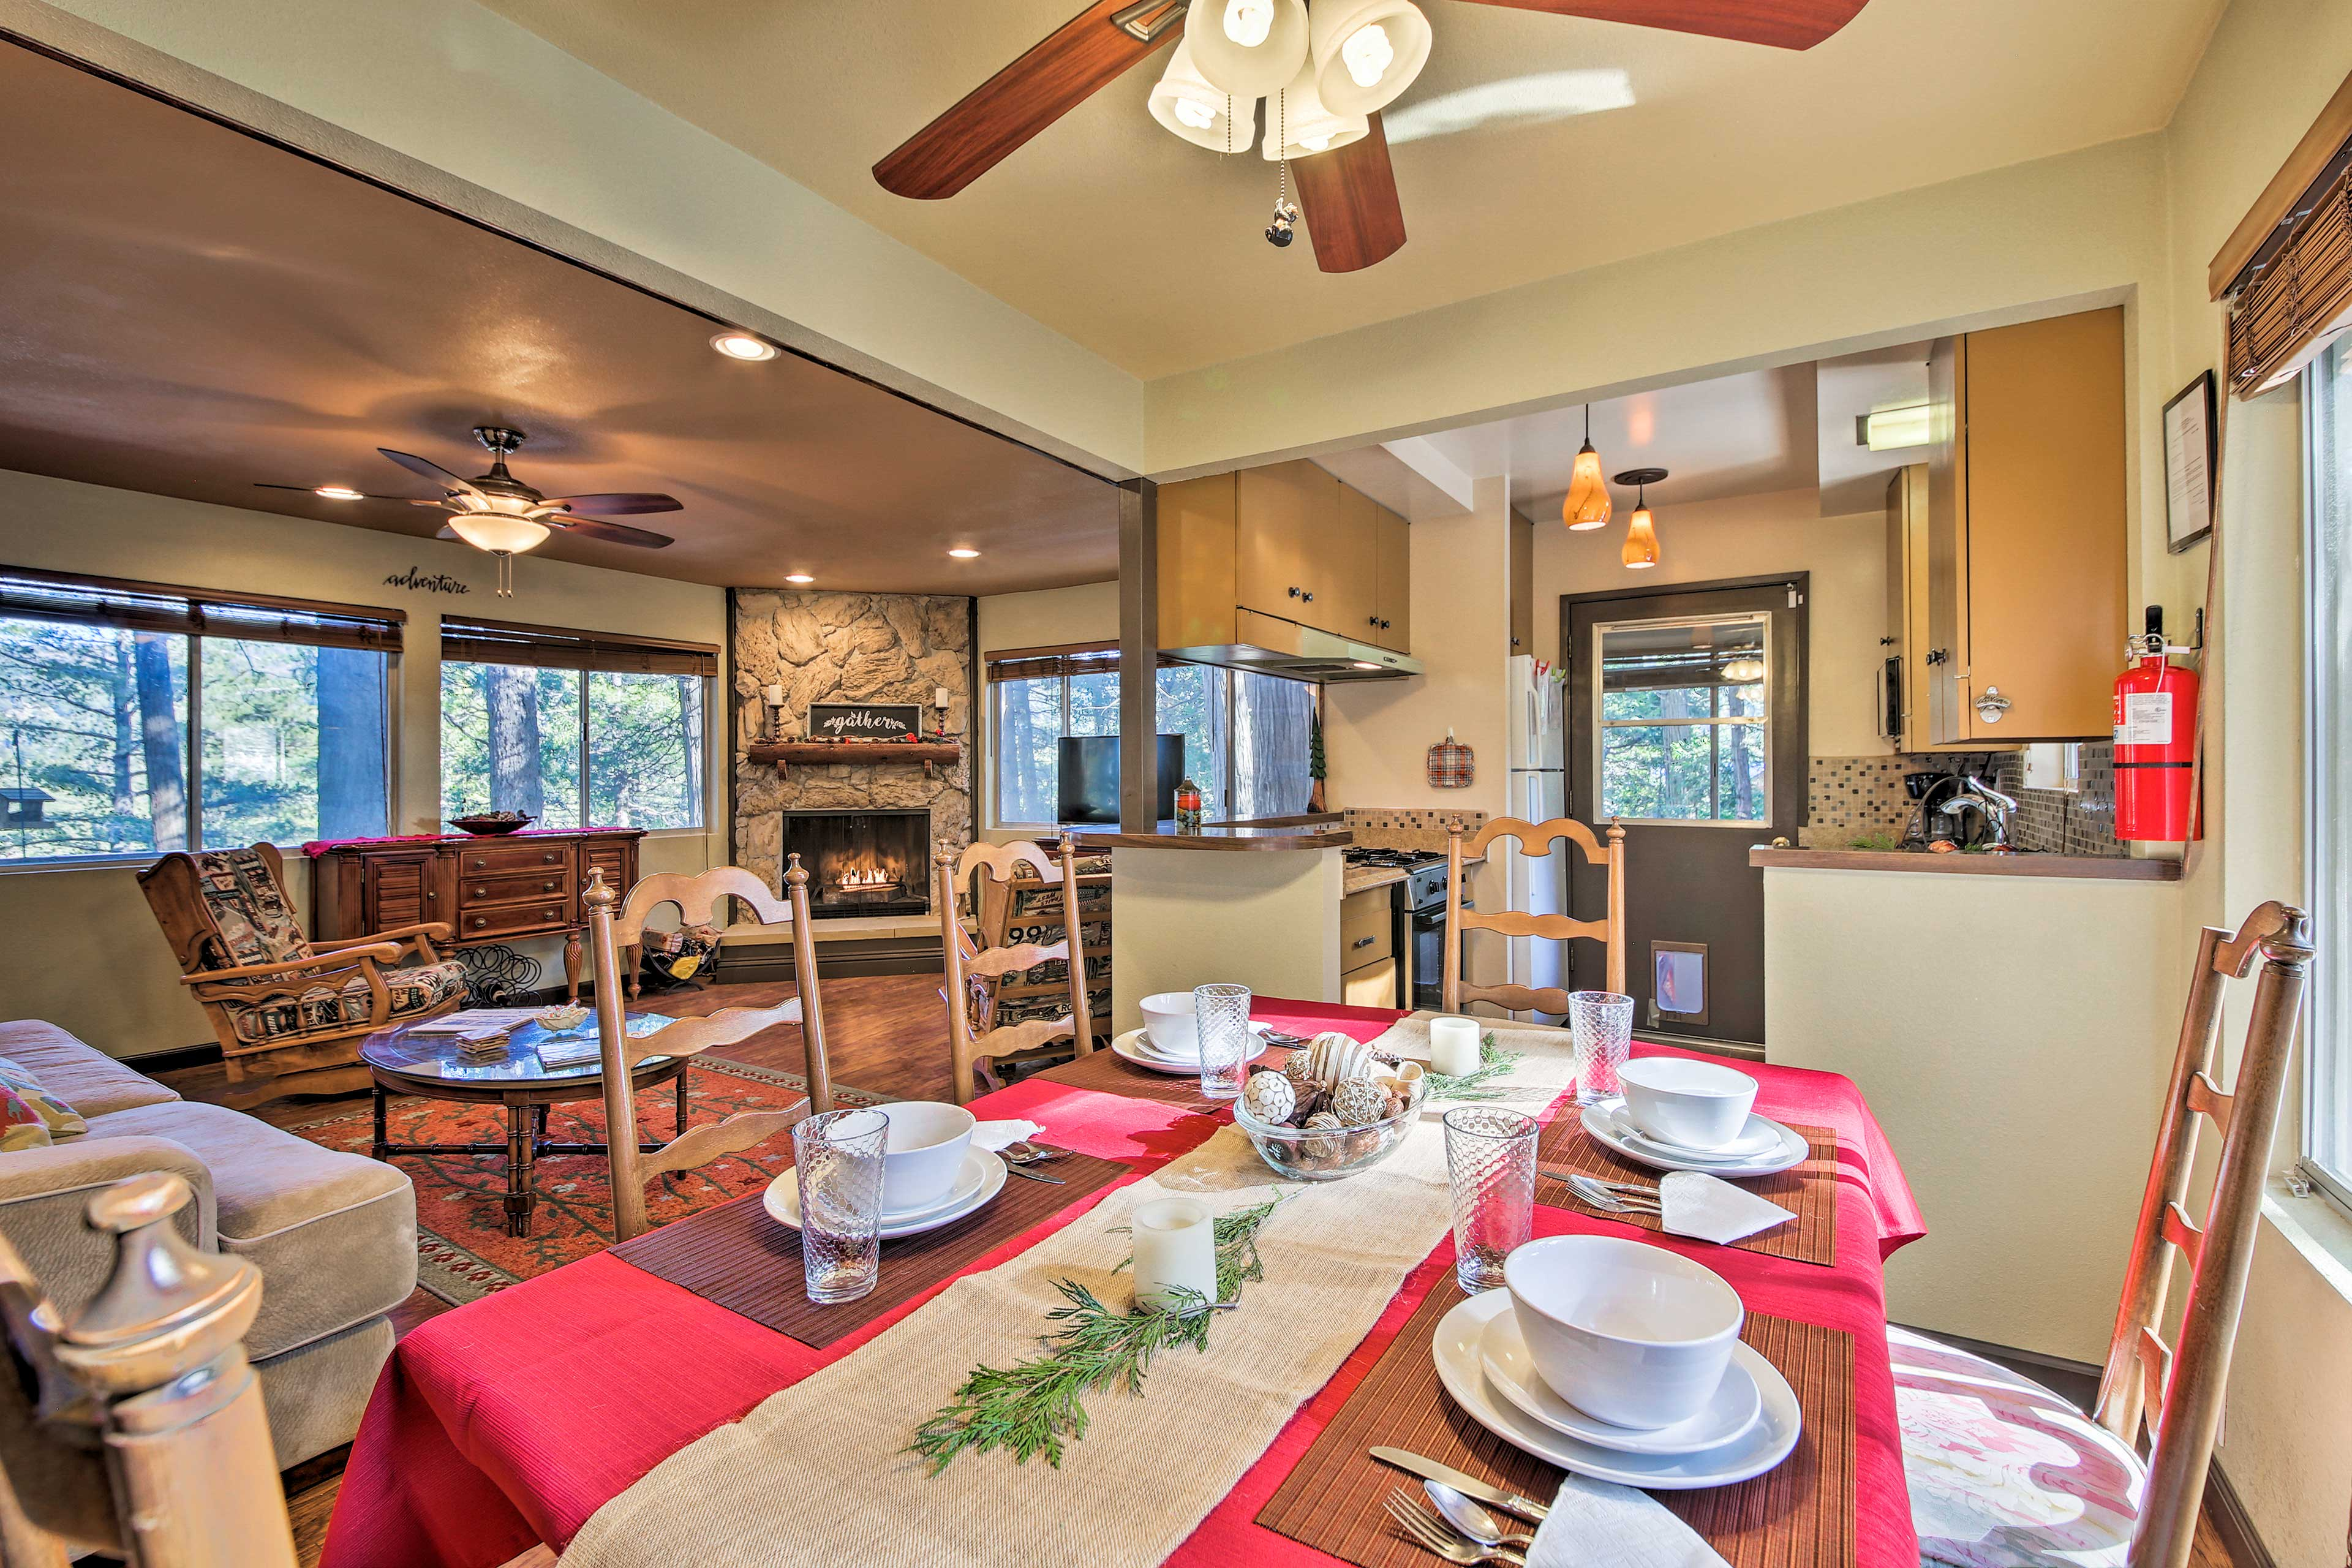 This 3-bedroom, 2-bath home features 1,224 square feet of living space.